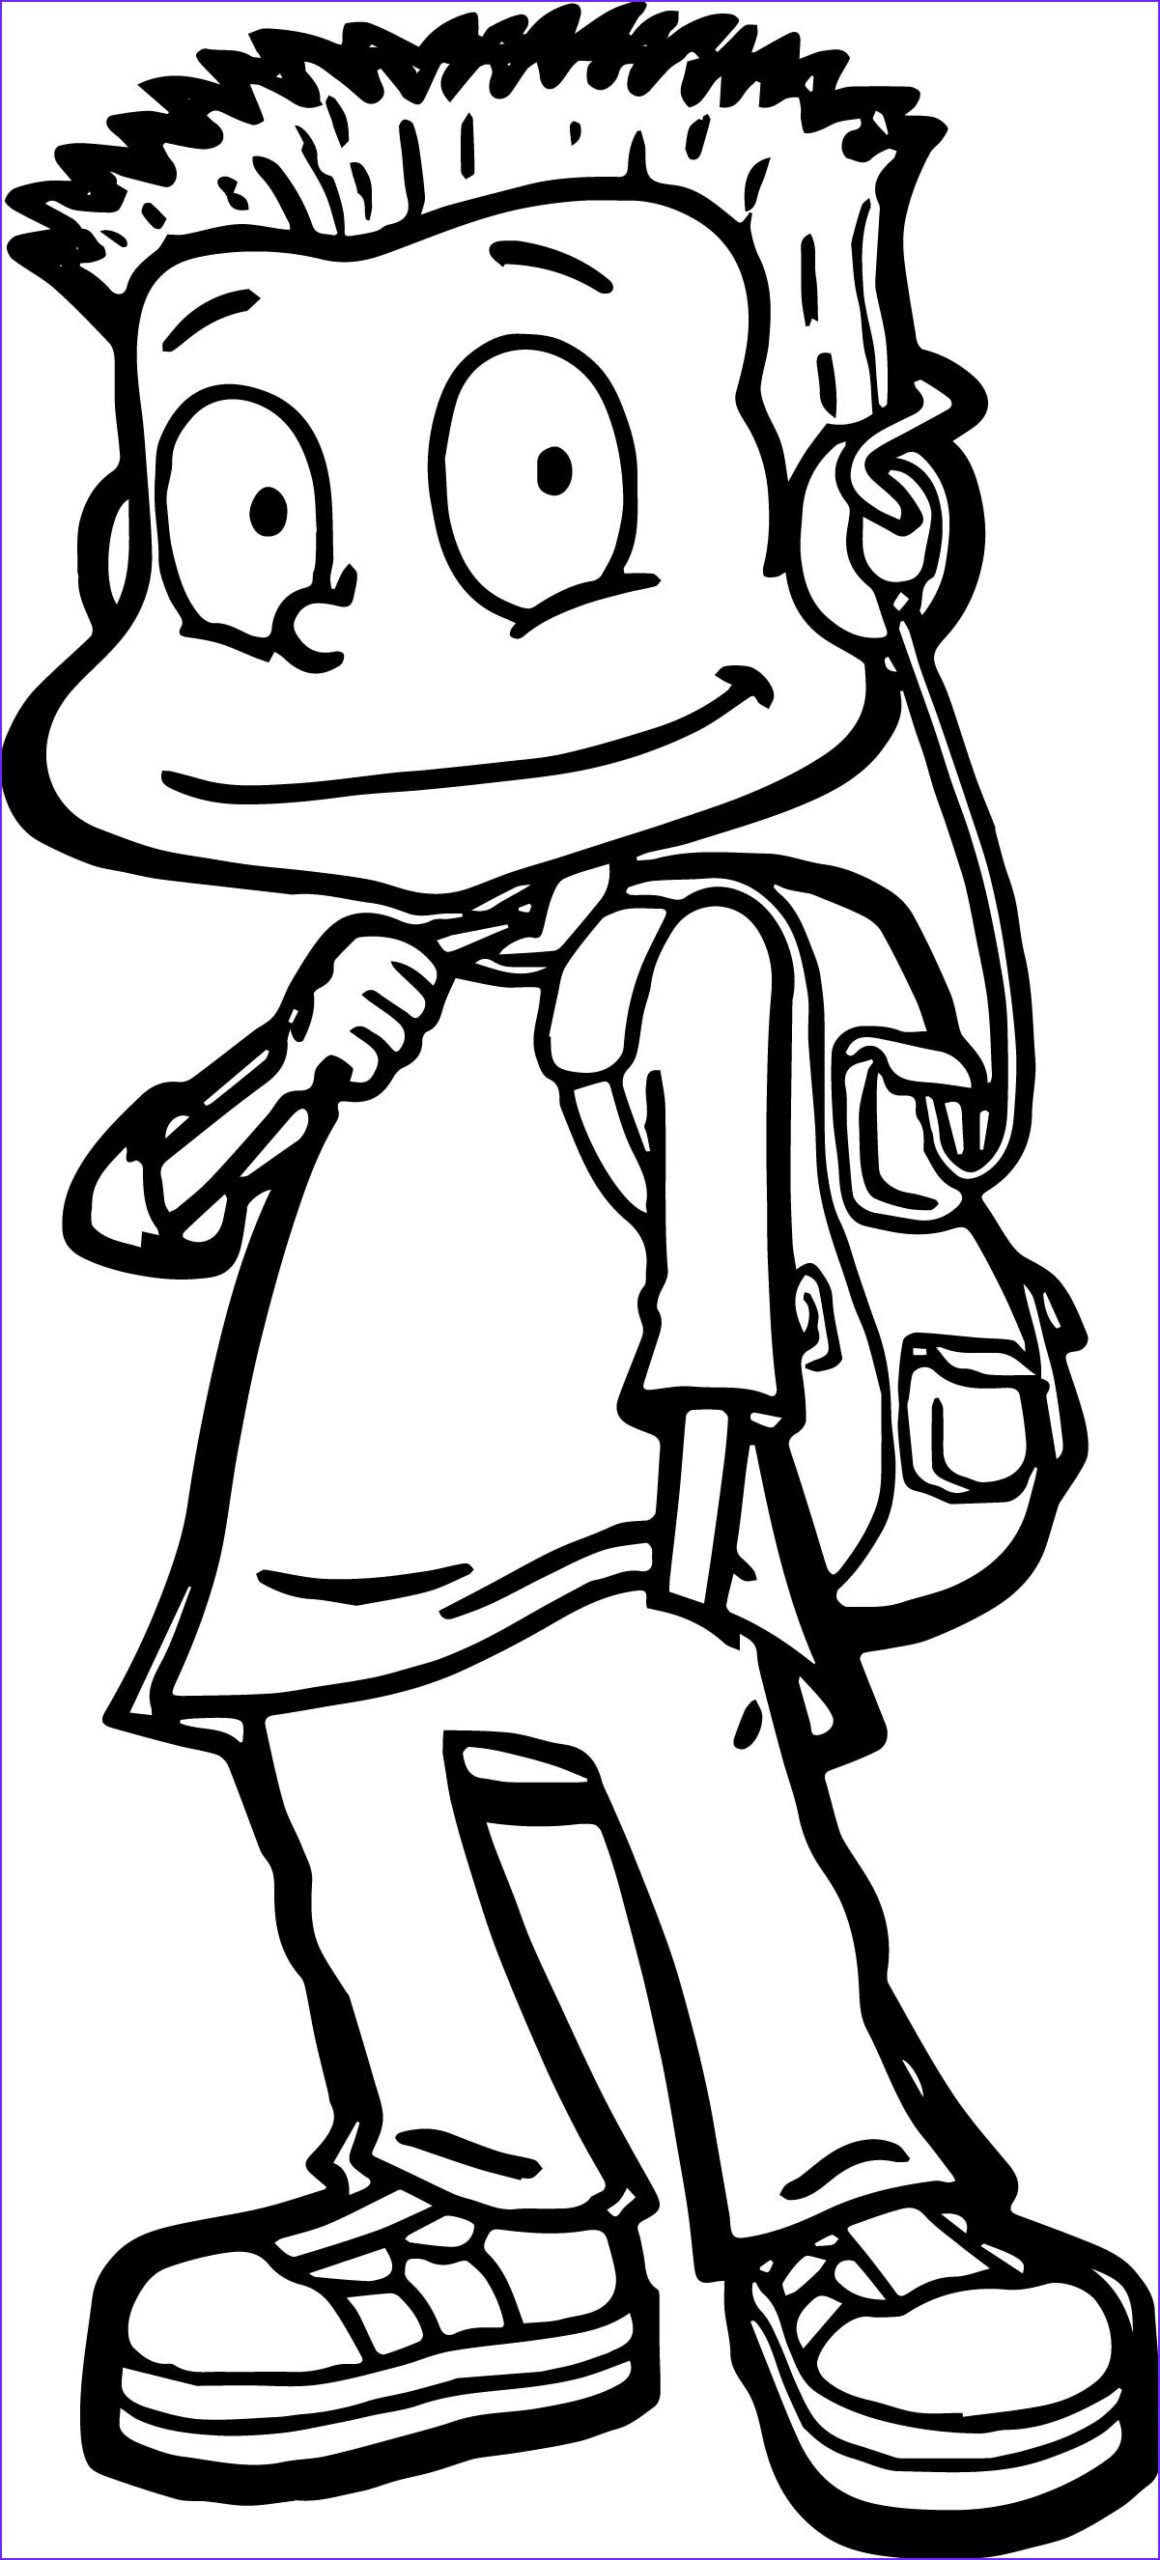 Grown Up Coloring Pages Luxury Images All Grown Up Coloring Pages